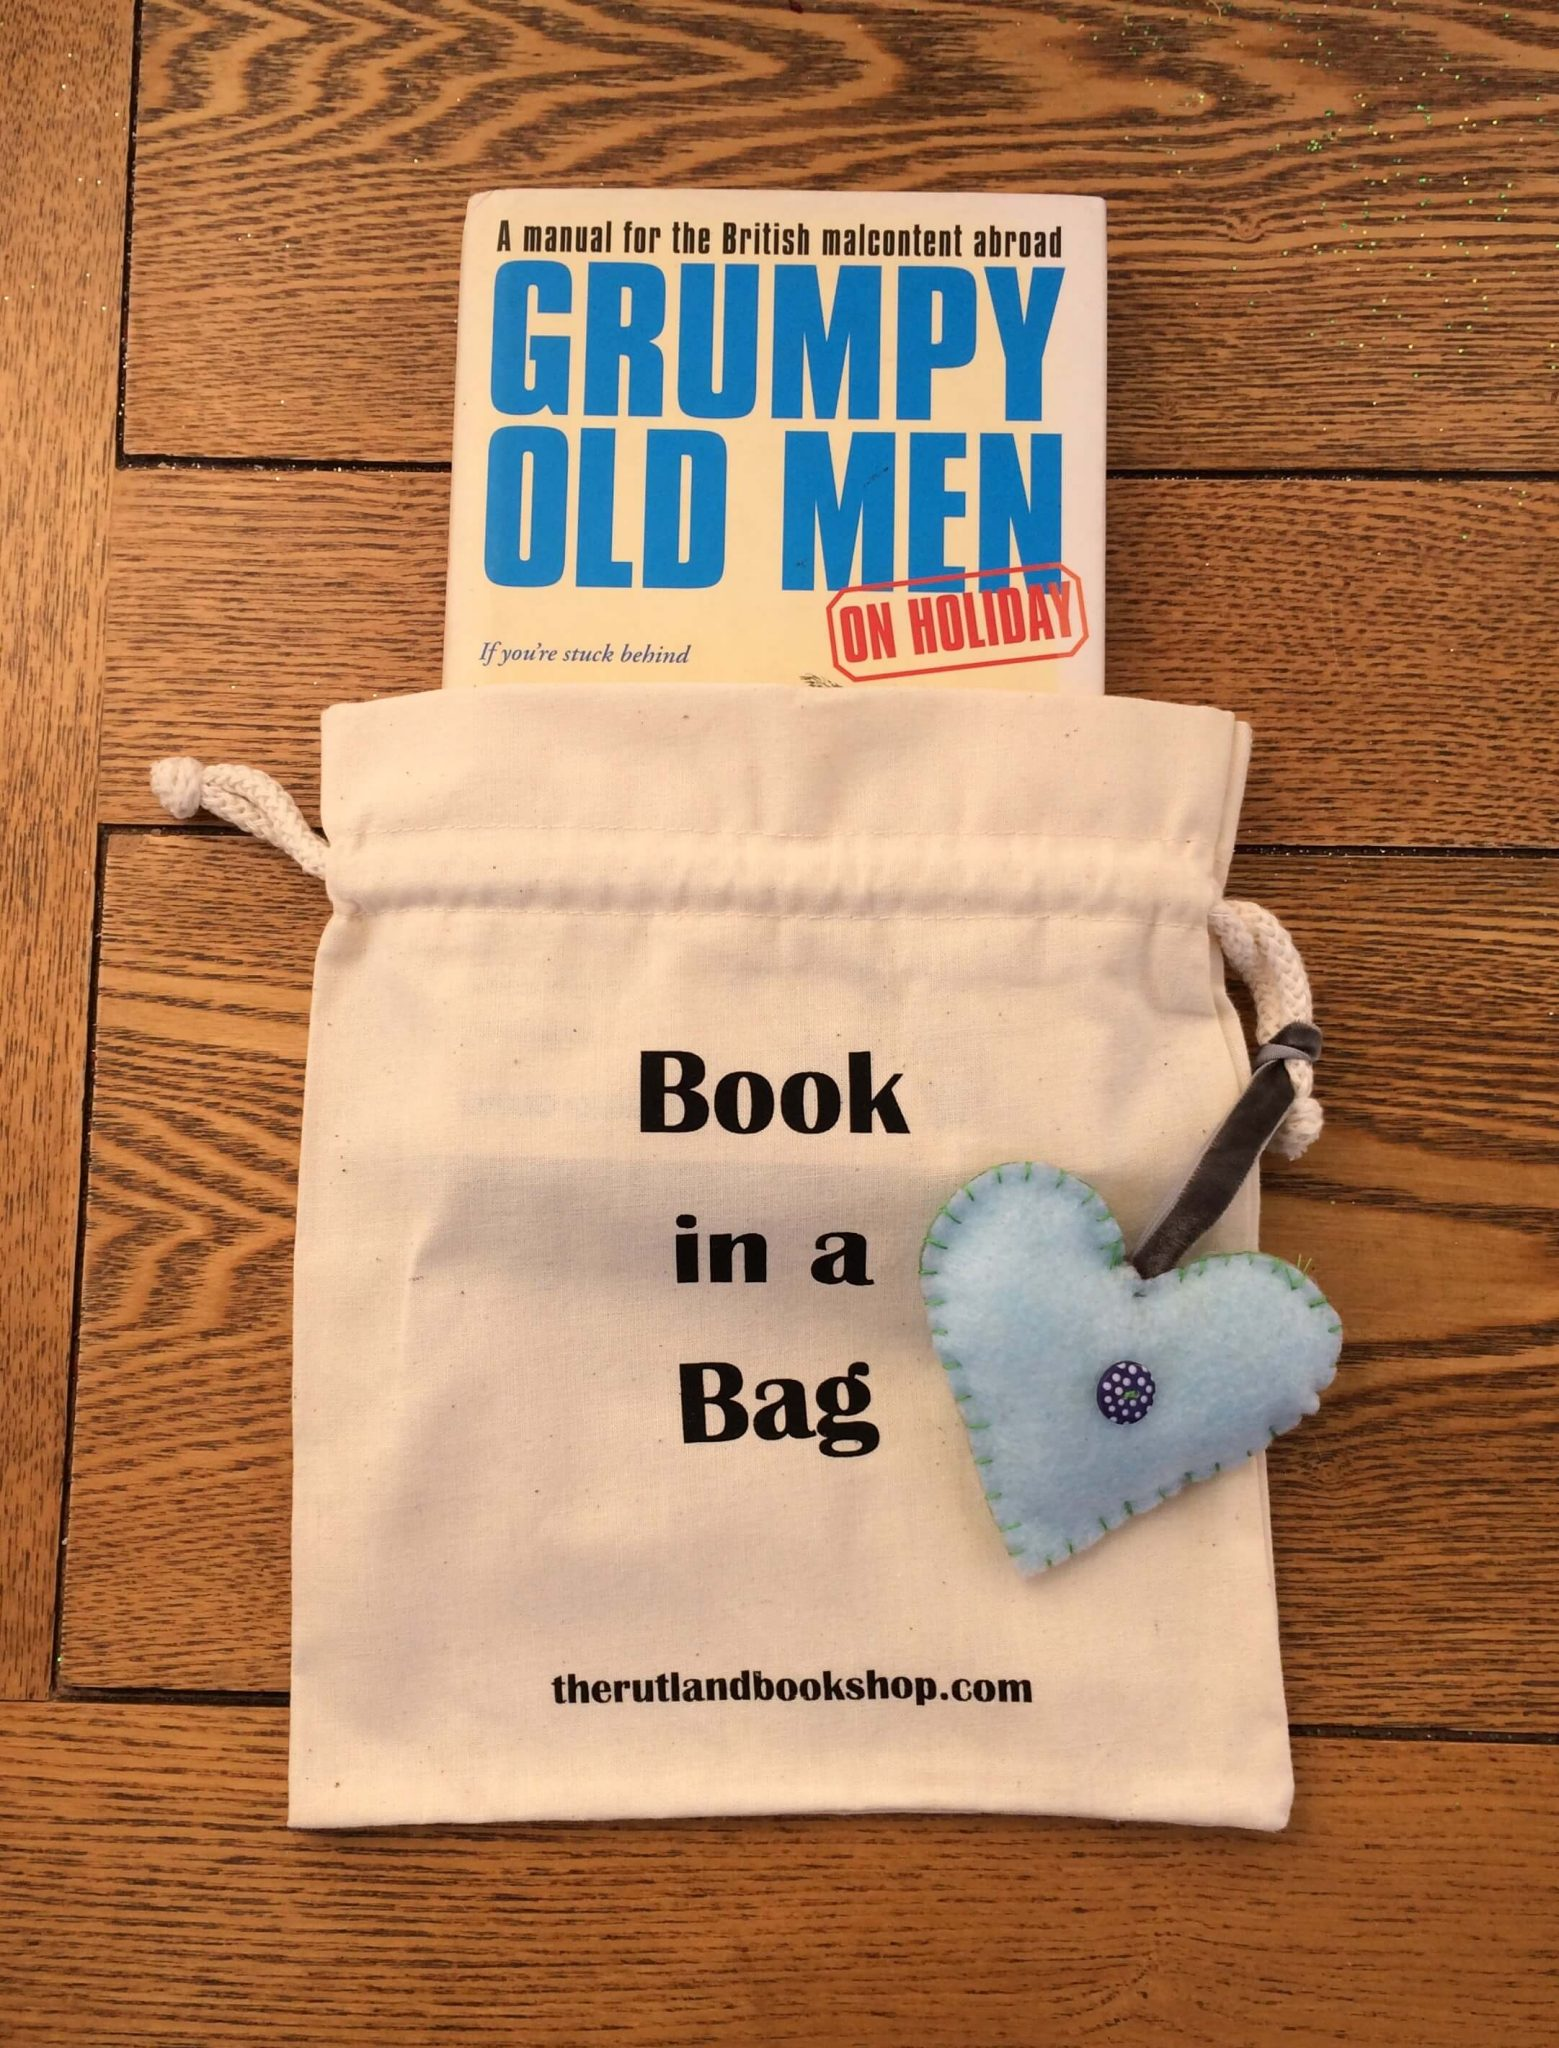 Grumpy Old Men On Holiday By David Quantick (Book In A Bag)